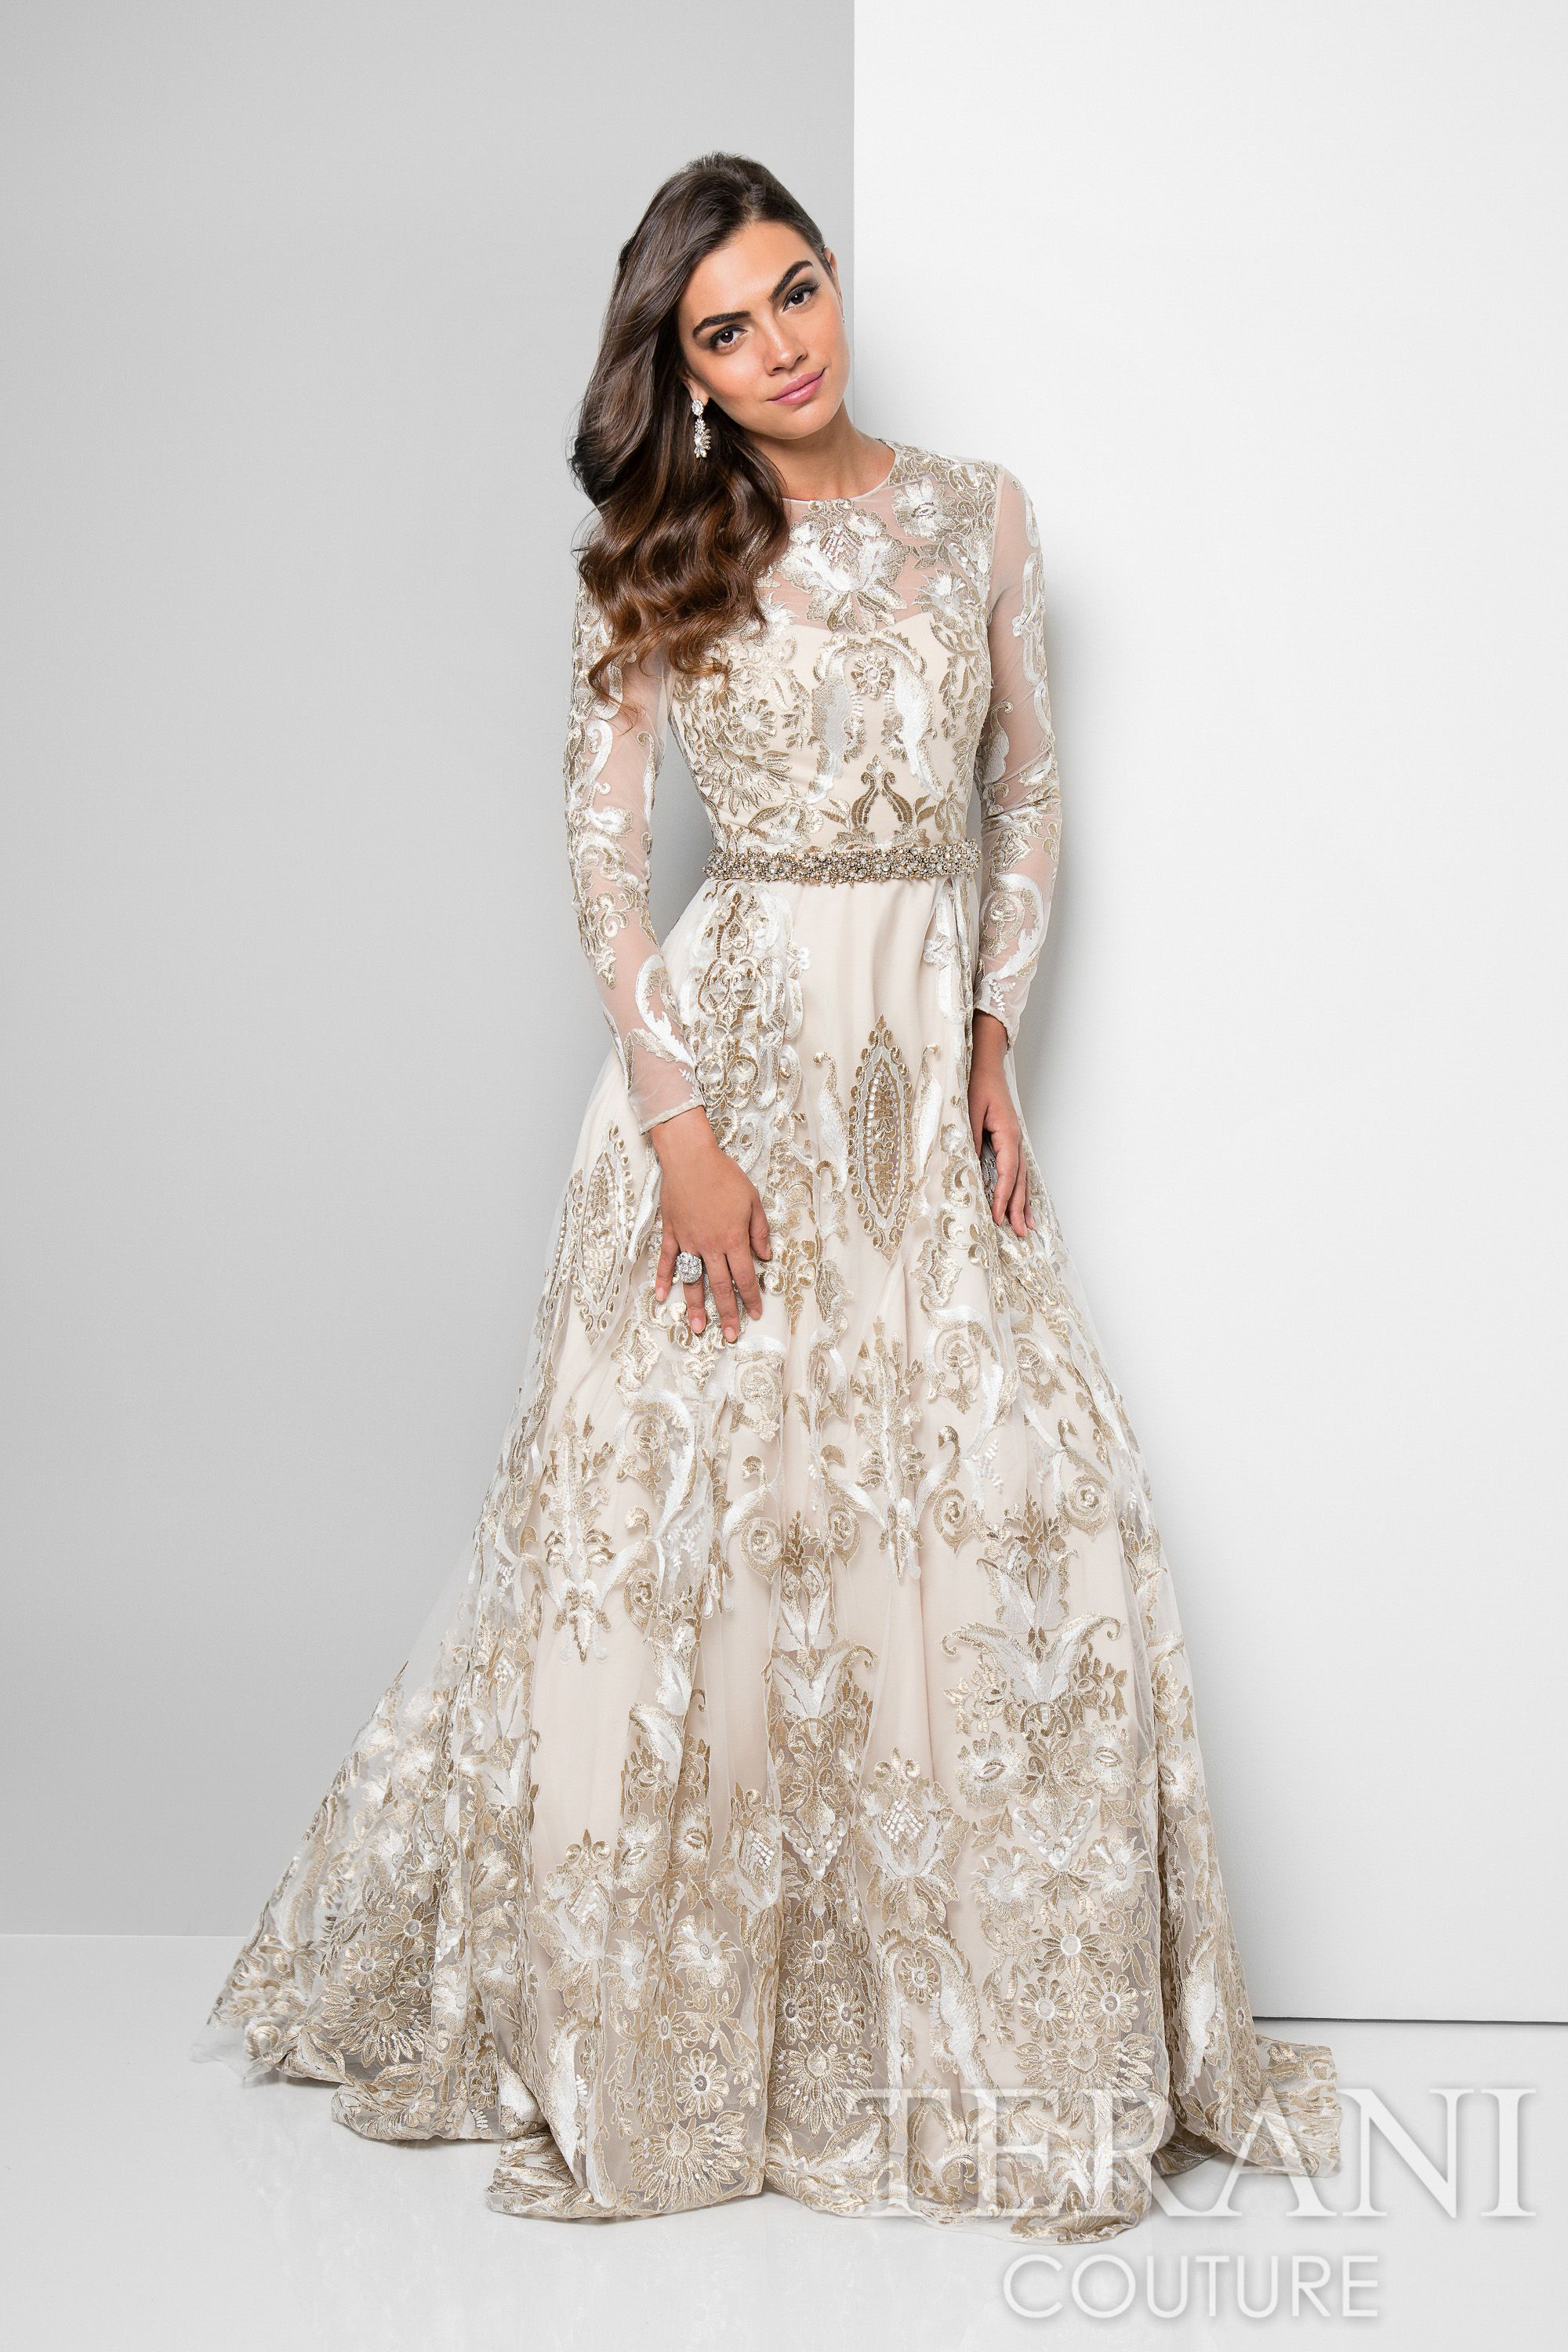 Designer Dress With Two Tone Metallic Embroidery That Is